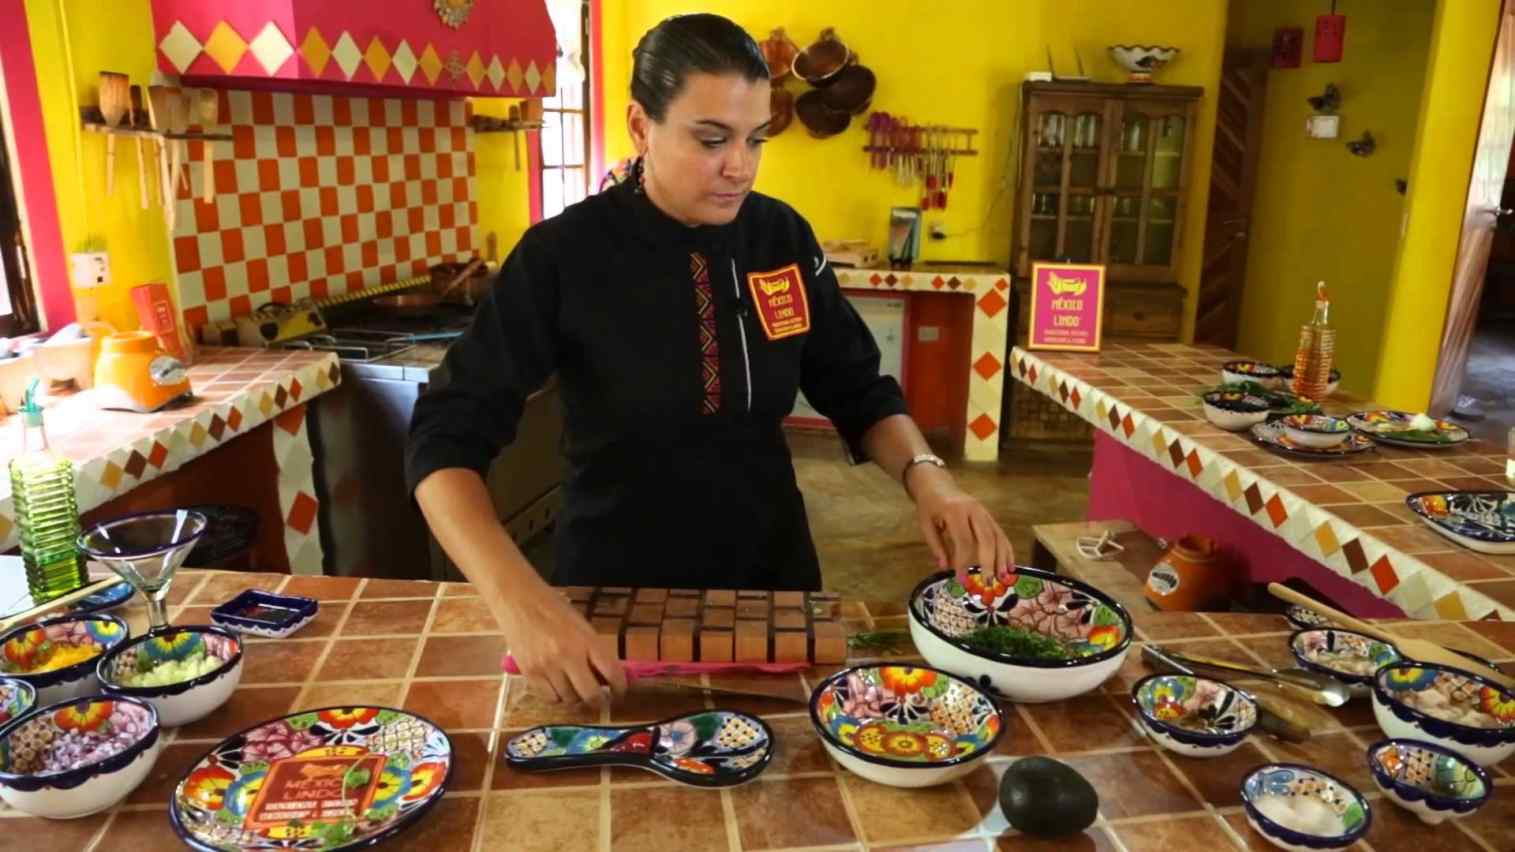 Discover regional classics at Mexico Lindo Cooking School